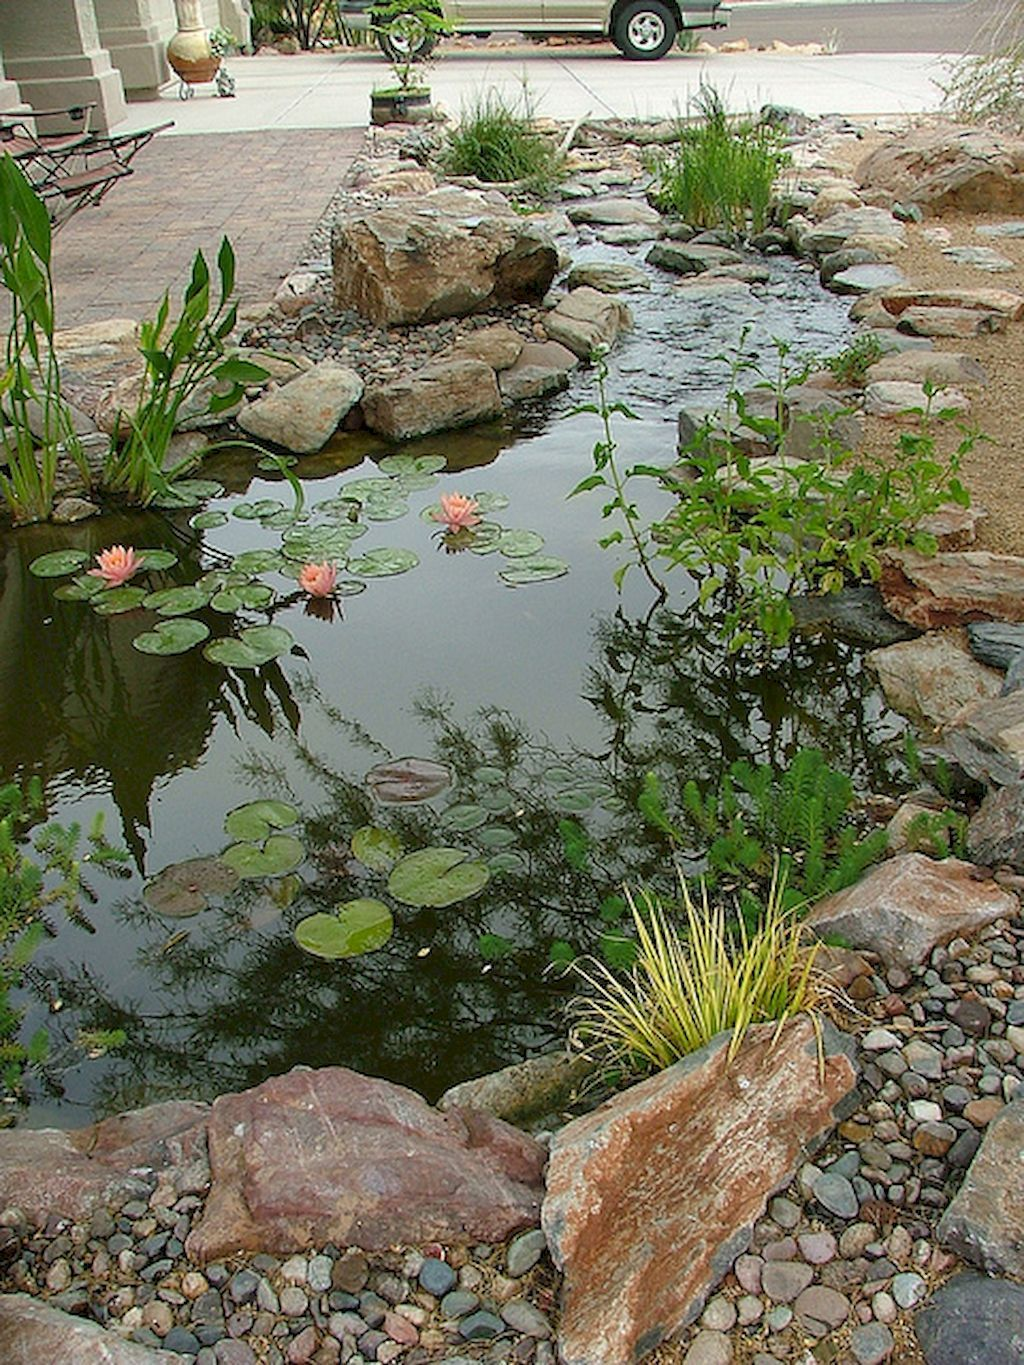 Beautiful backyard ponds and waterfalls garden ideas 56 for Koi pond landscaping ideas